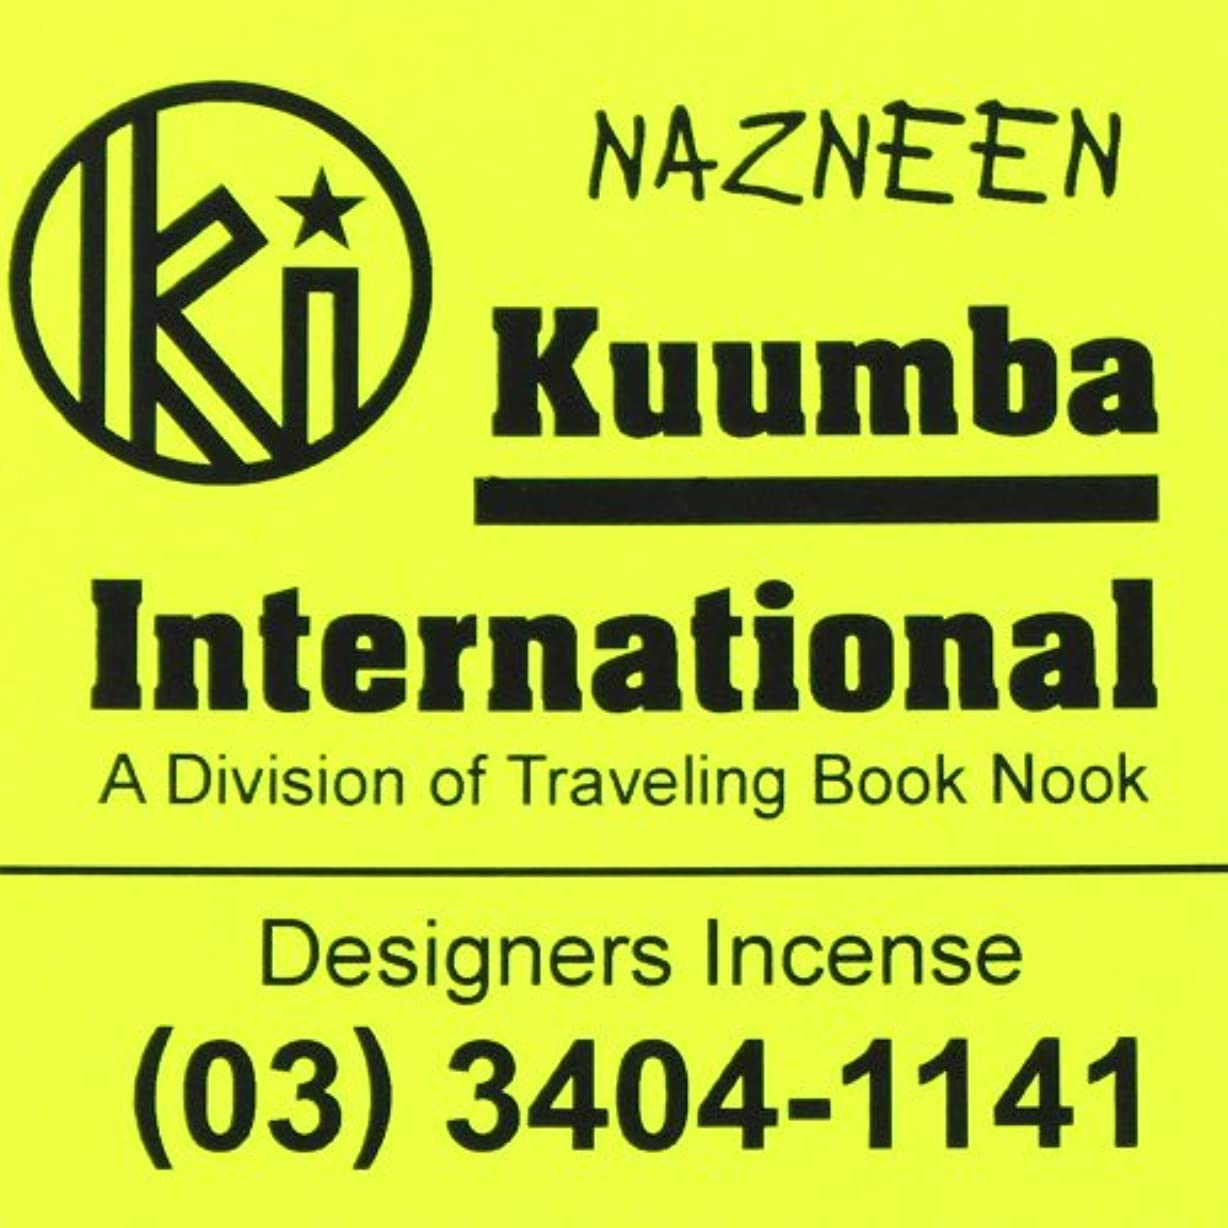 腐った吸う敬意を表する(クンバ) KUUMBA『classic regular incense』(NAZNEEN) (Regular size)